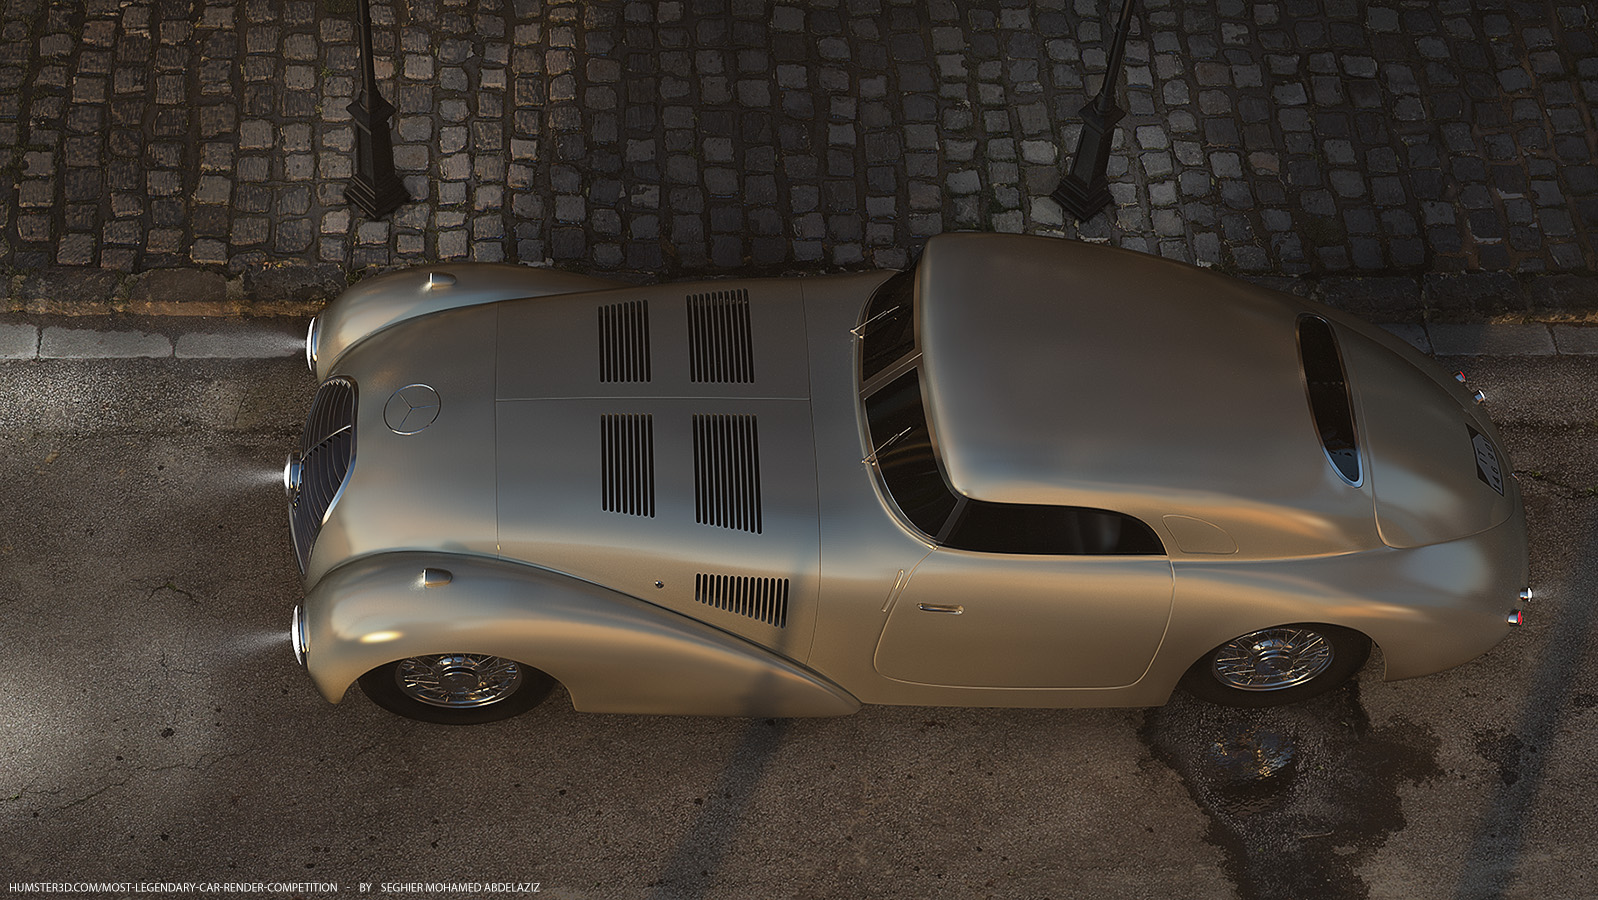 Piece of history: Mercedes-Benz 540k Streamliner